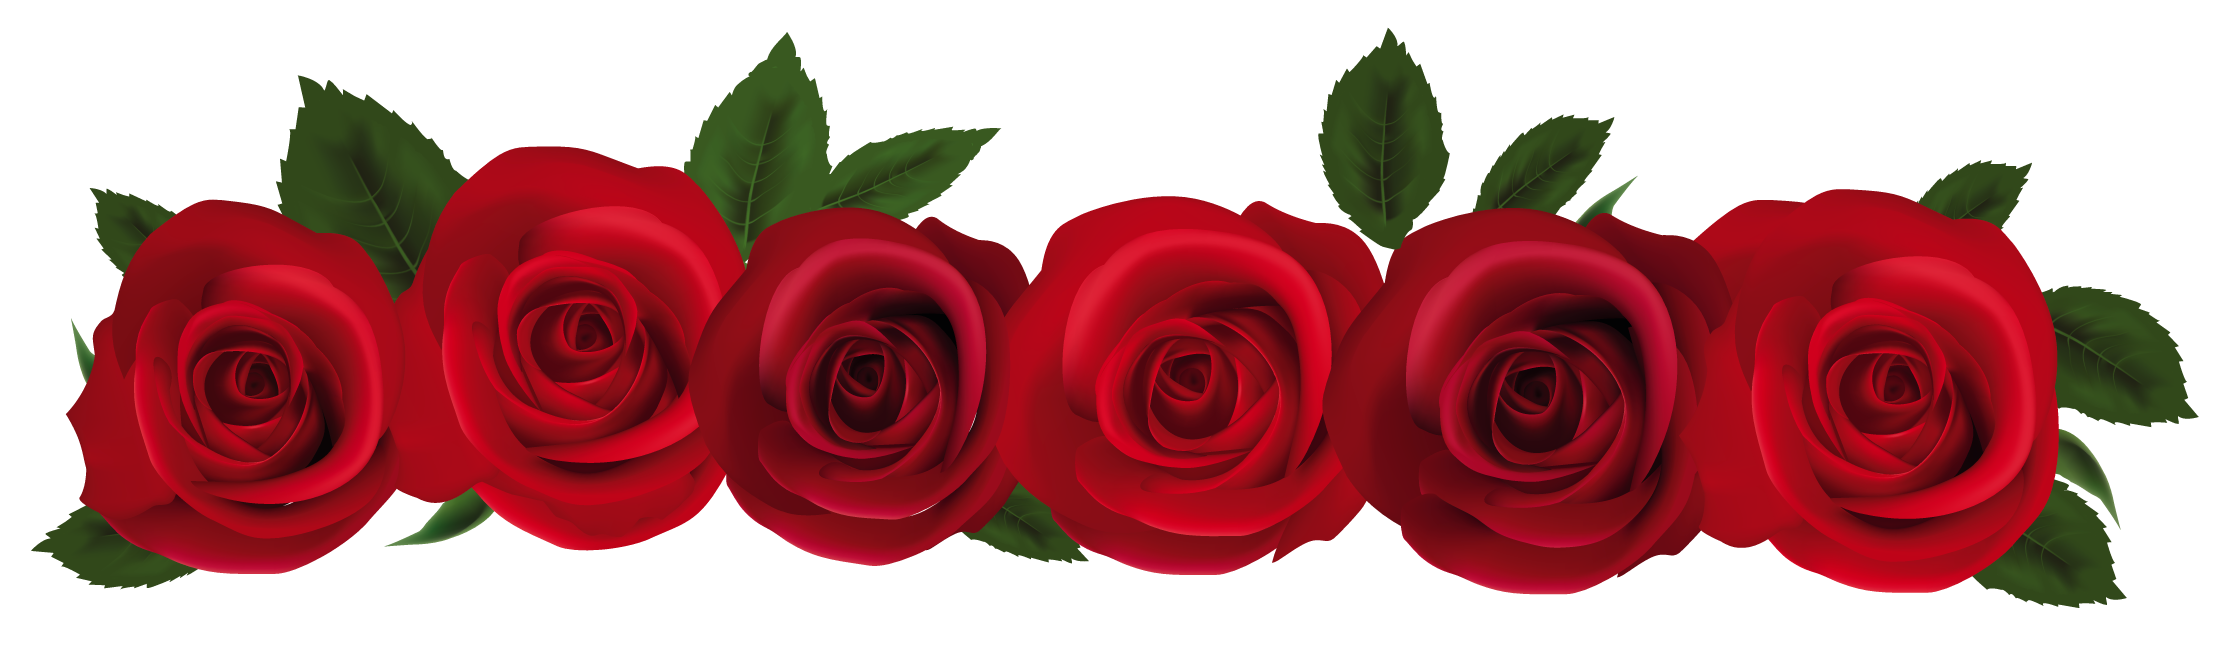 Rose clipart horizontal #13